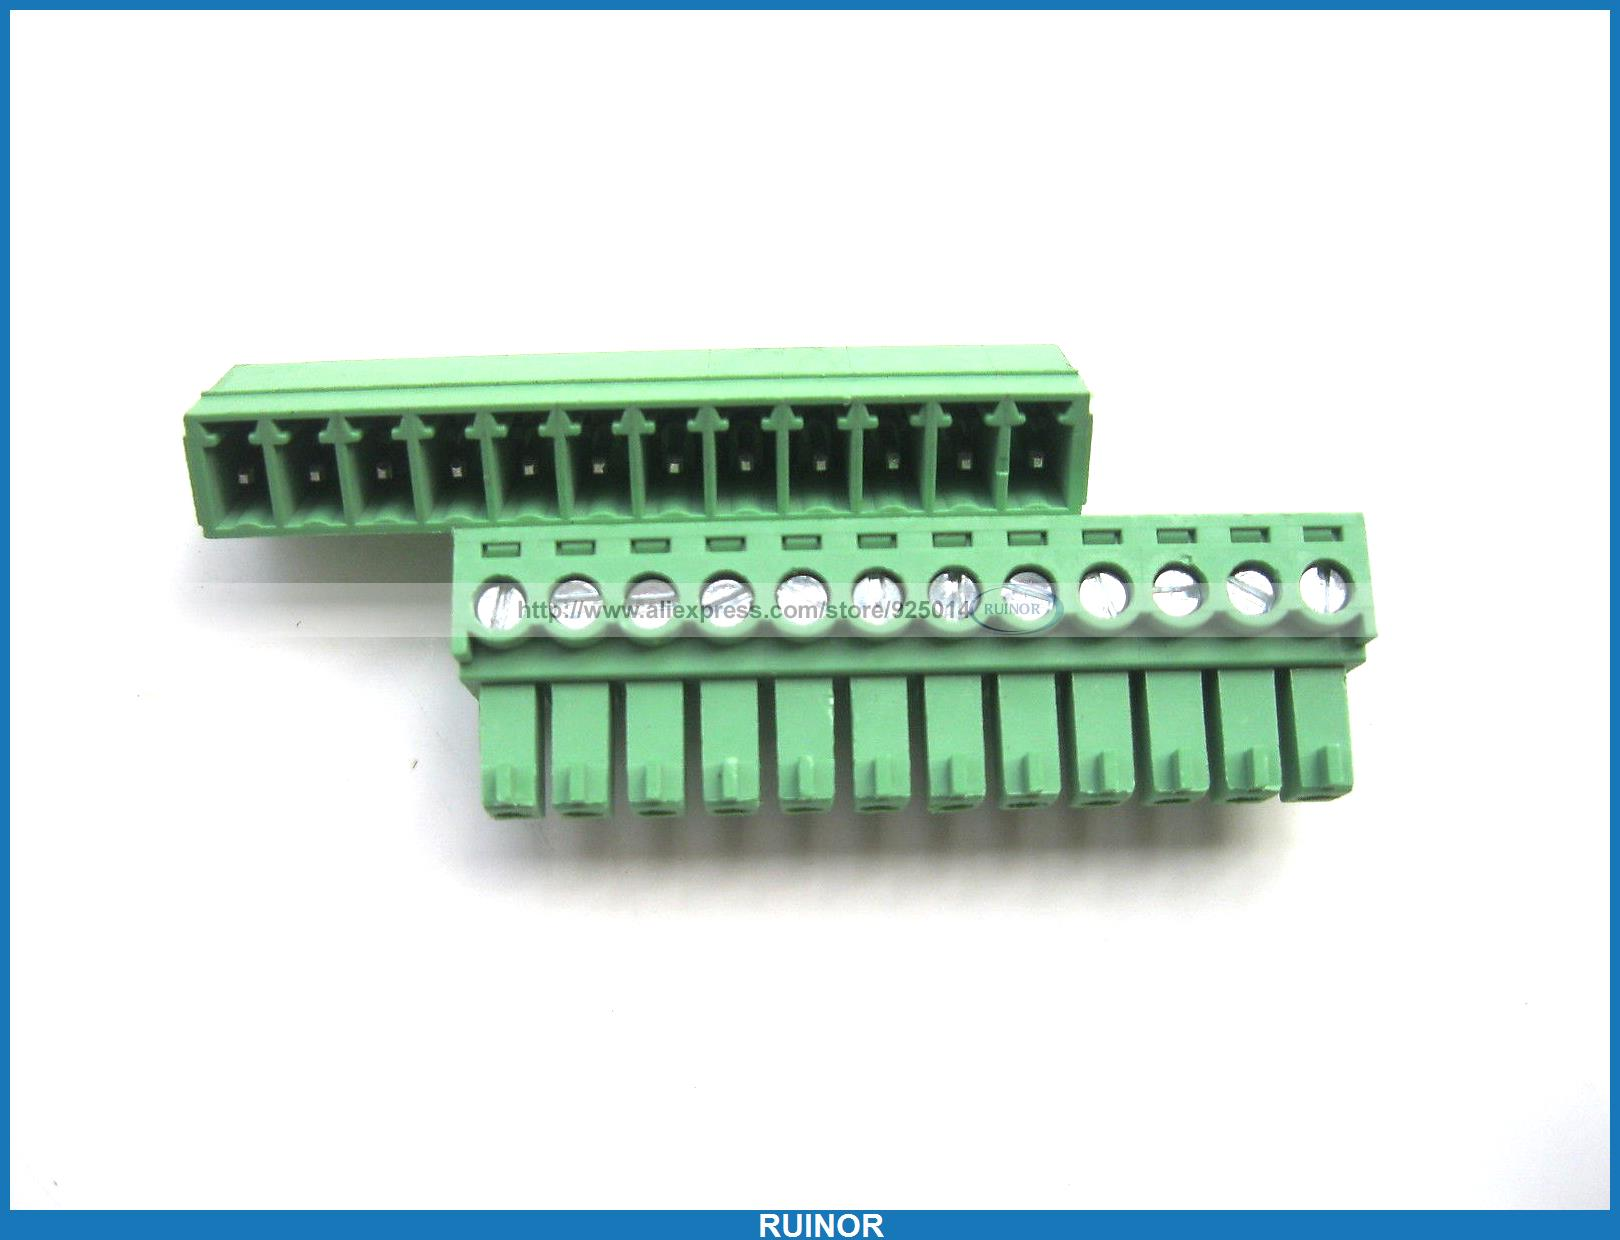 30 Pcs Screw Terminal Block Connector 3 81mm 12 Pin Green Pluggable Type 30 pcs 5 08mm angle 16 pin screw terminal block connector pluggable type green